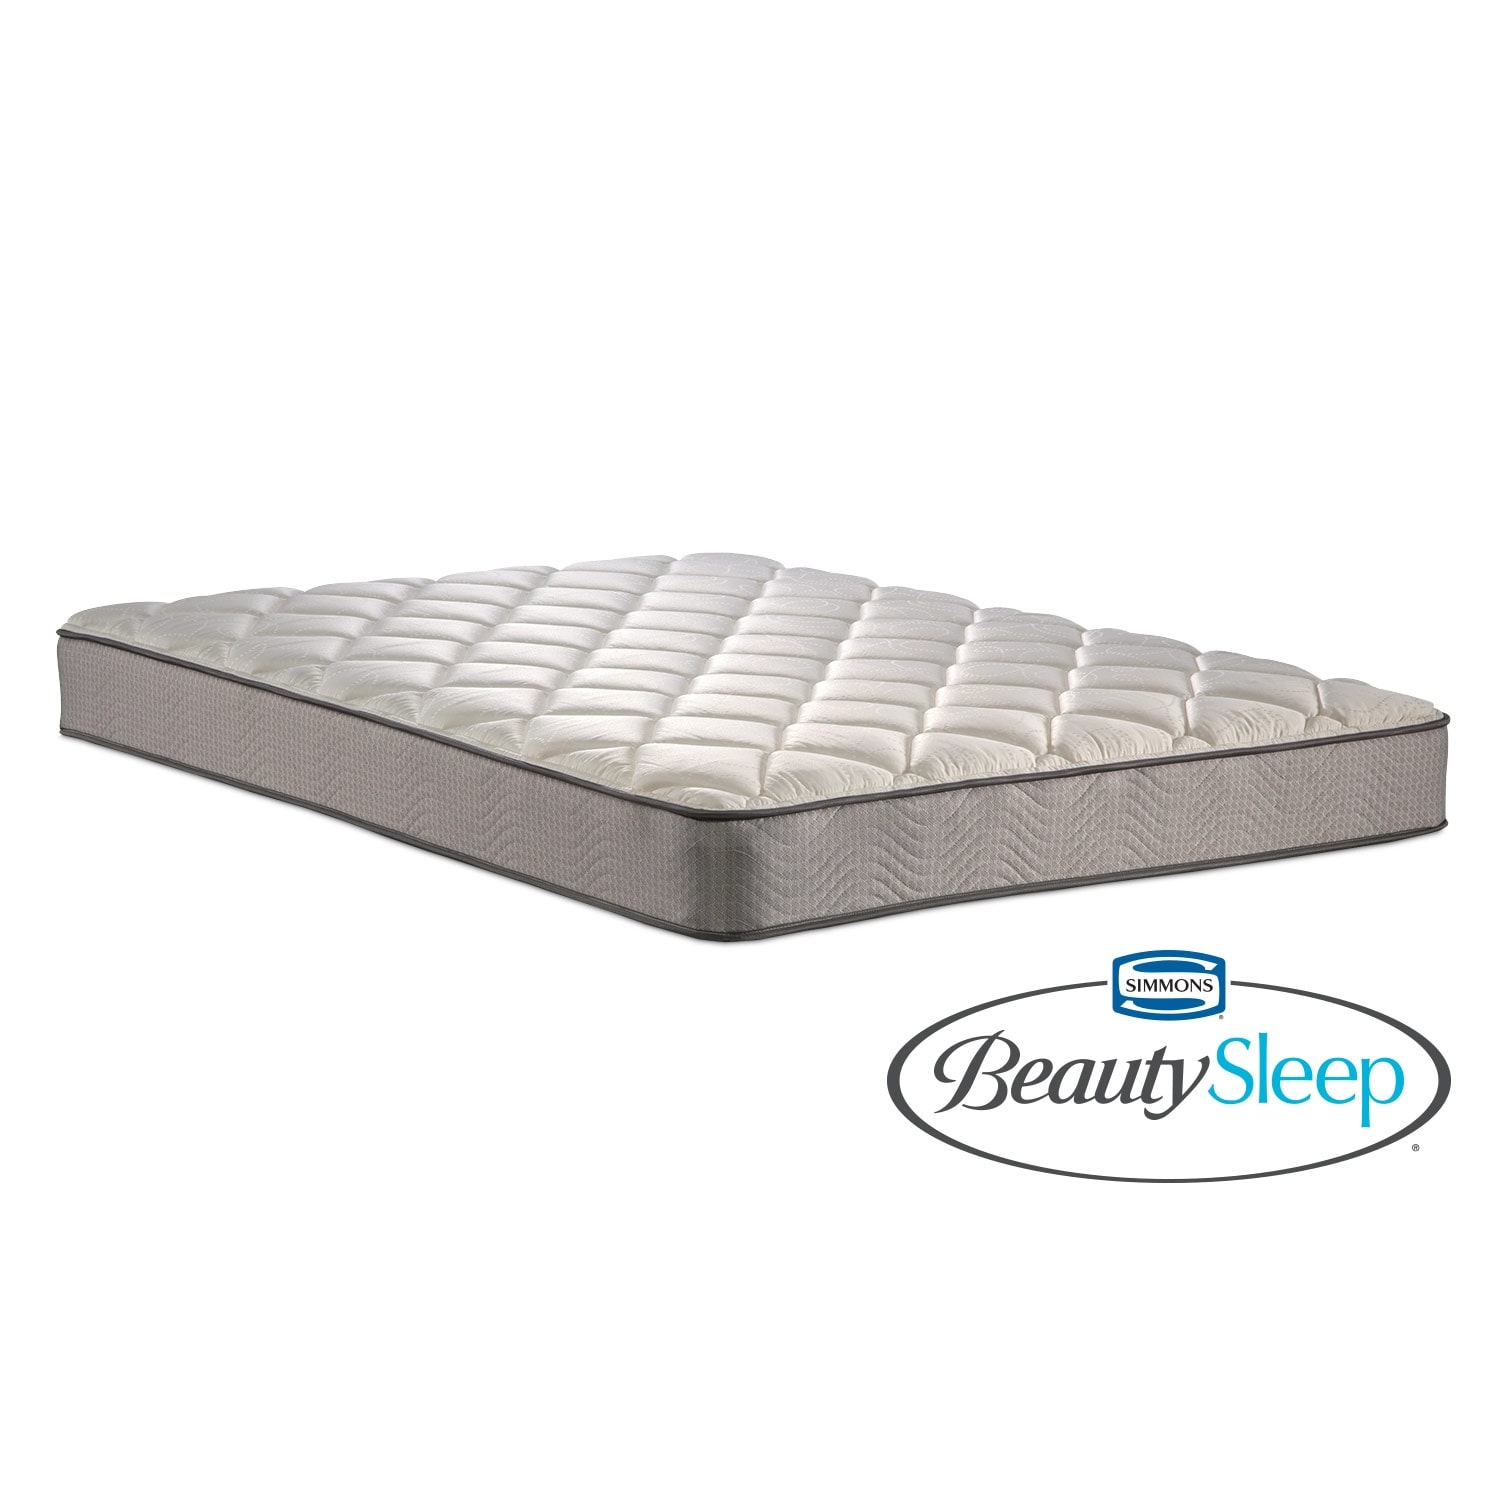 Mattresses and Bedding - Gates Way Twin Mattress